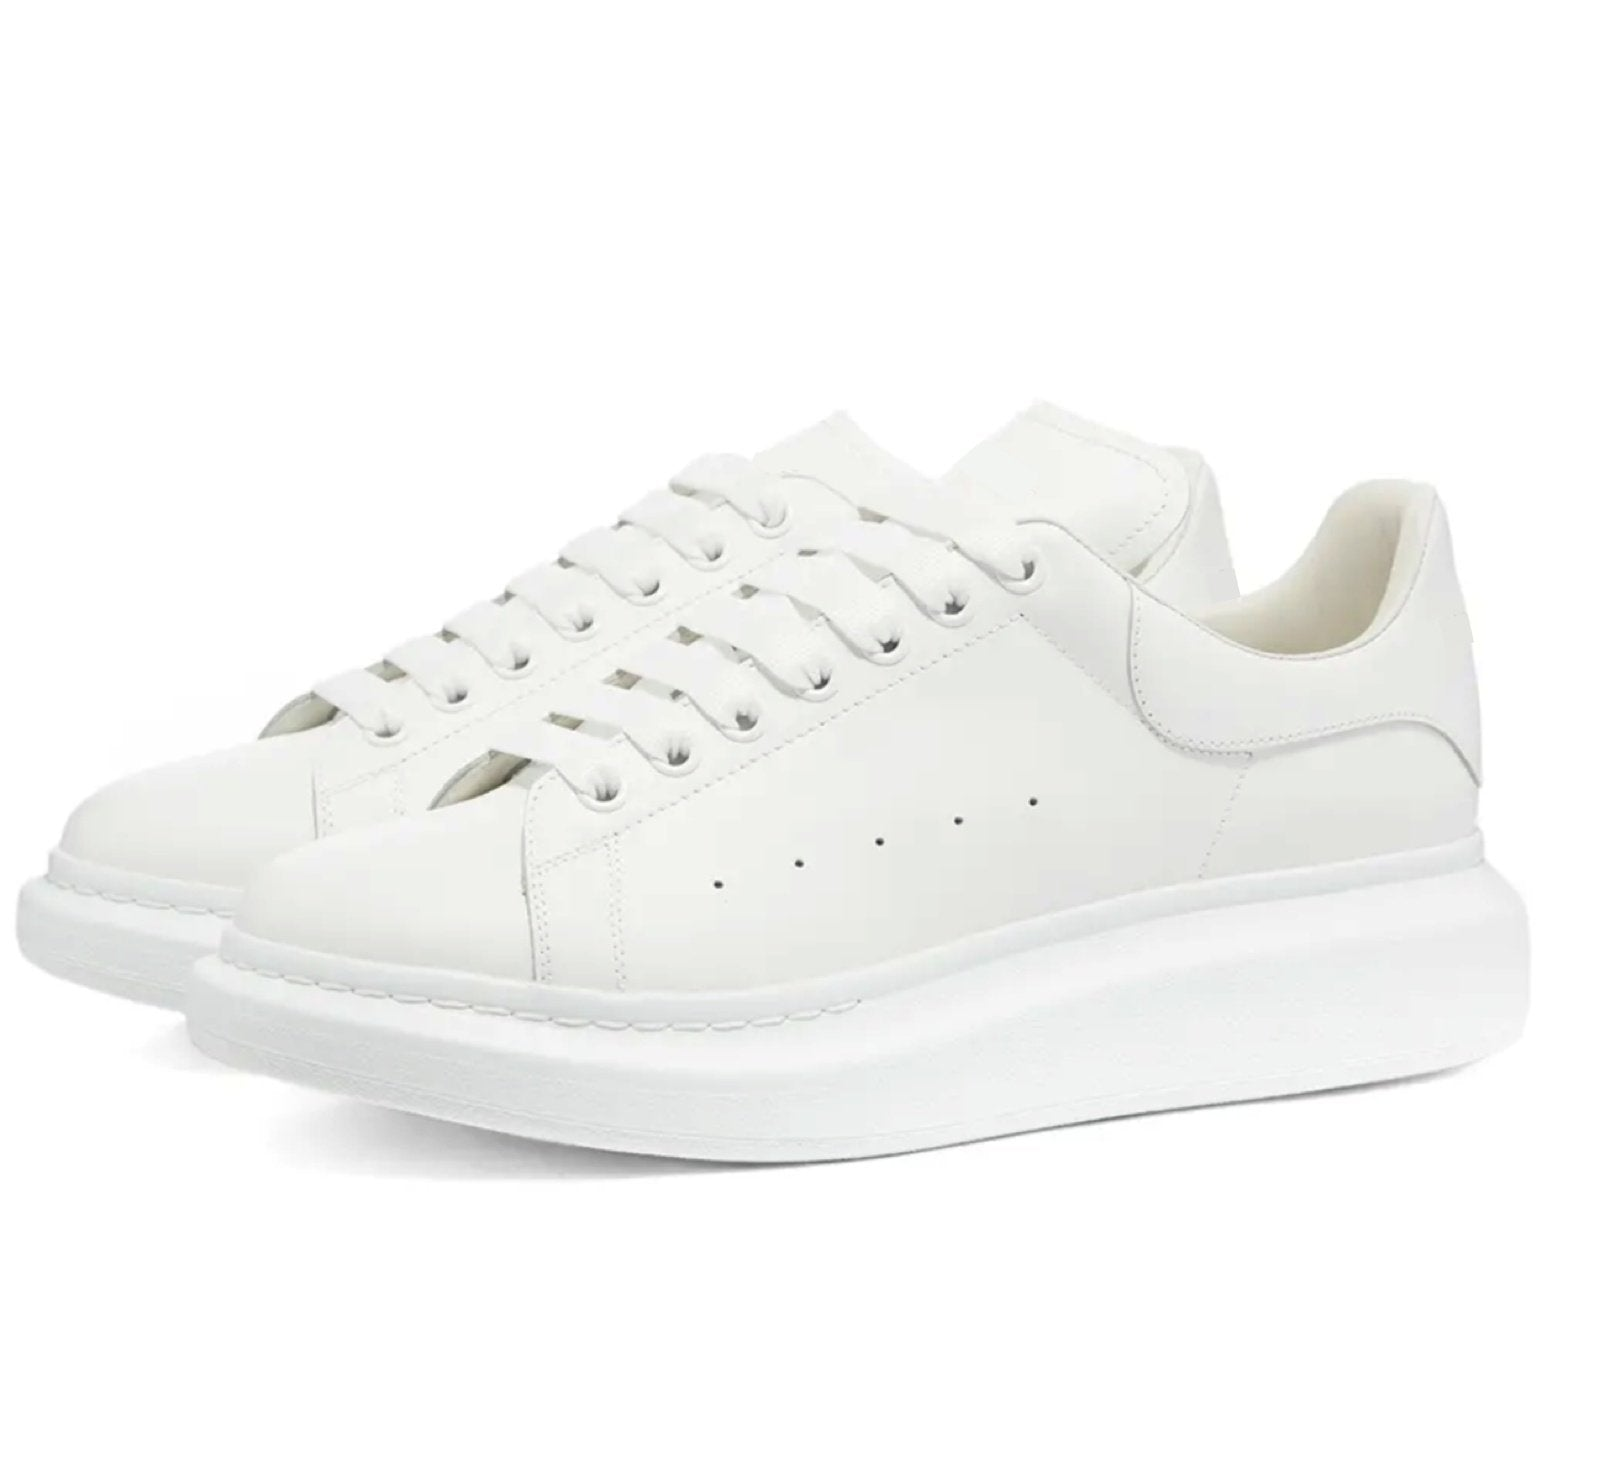 Thick Sole Trainers White/ White